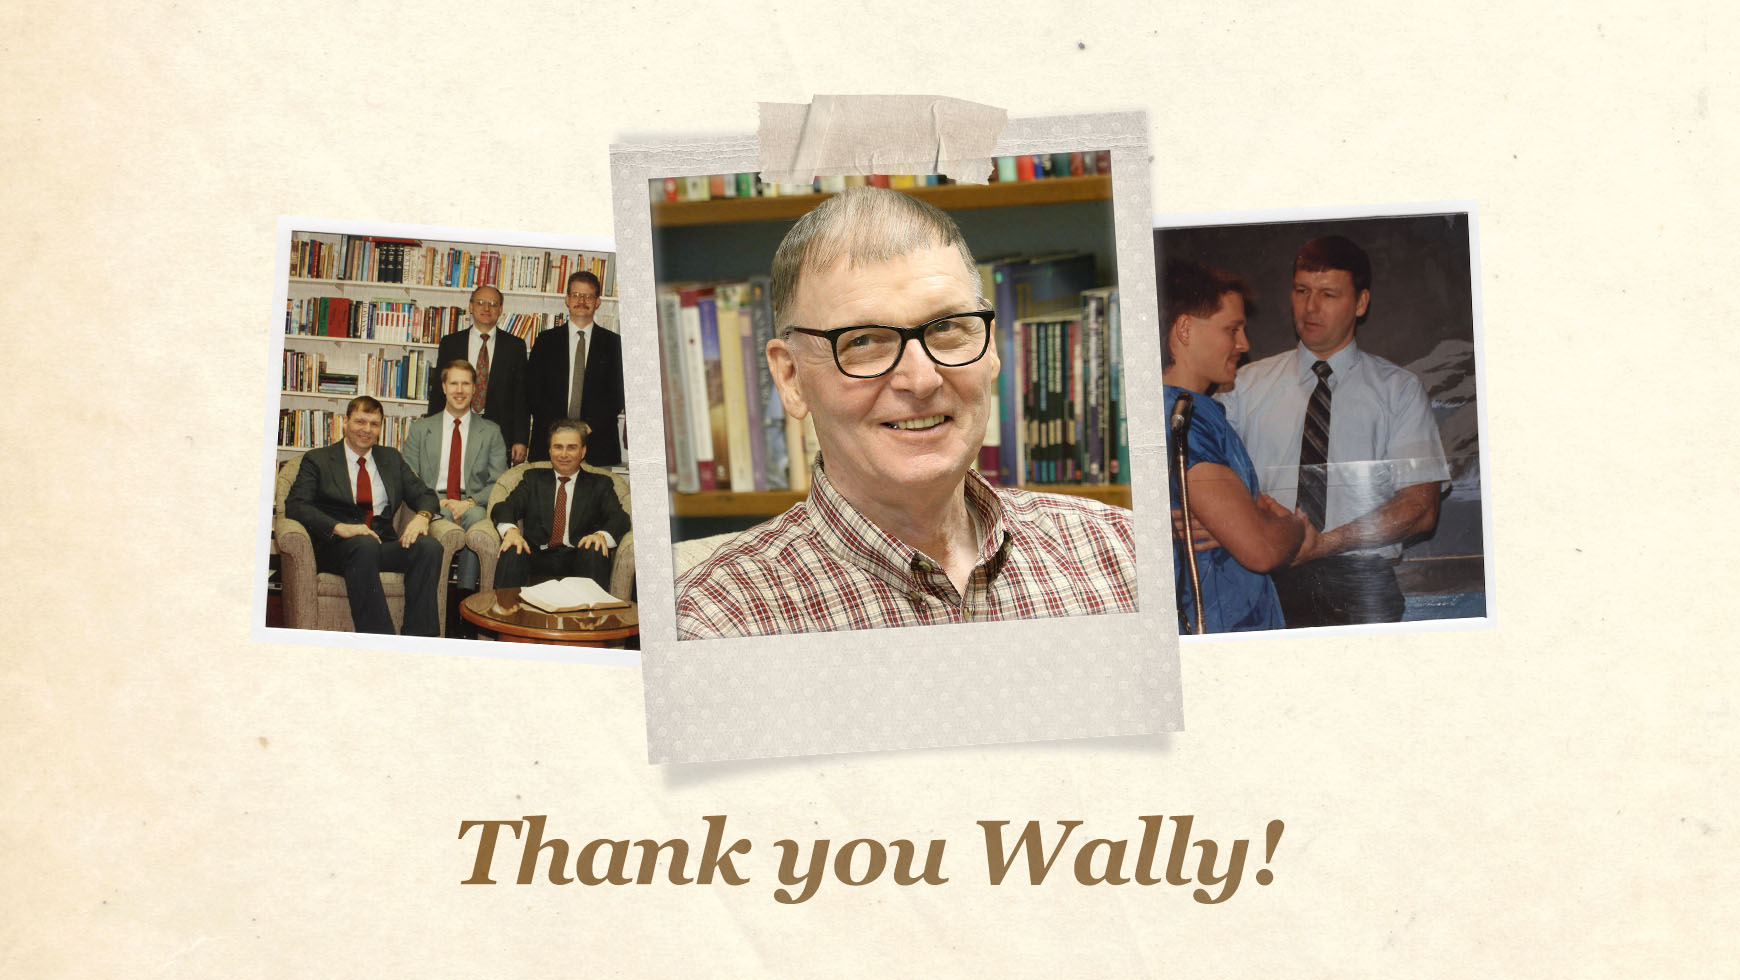 Thank You, Wally!